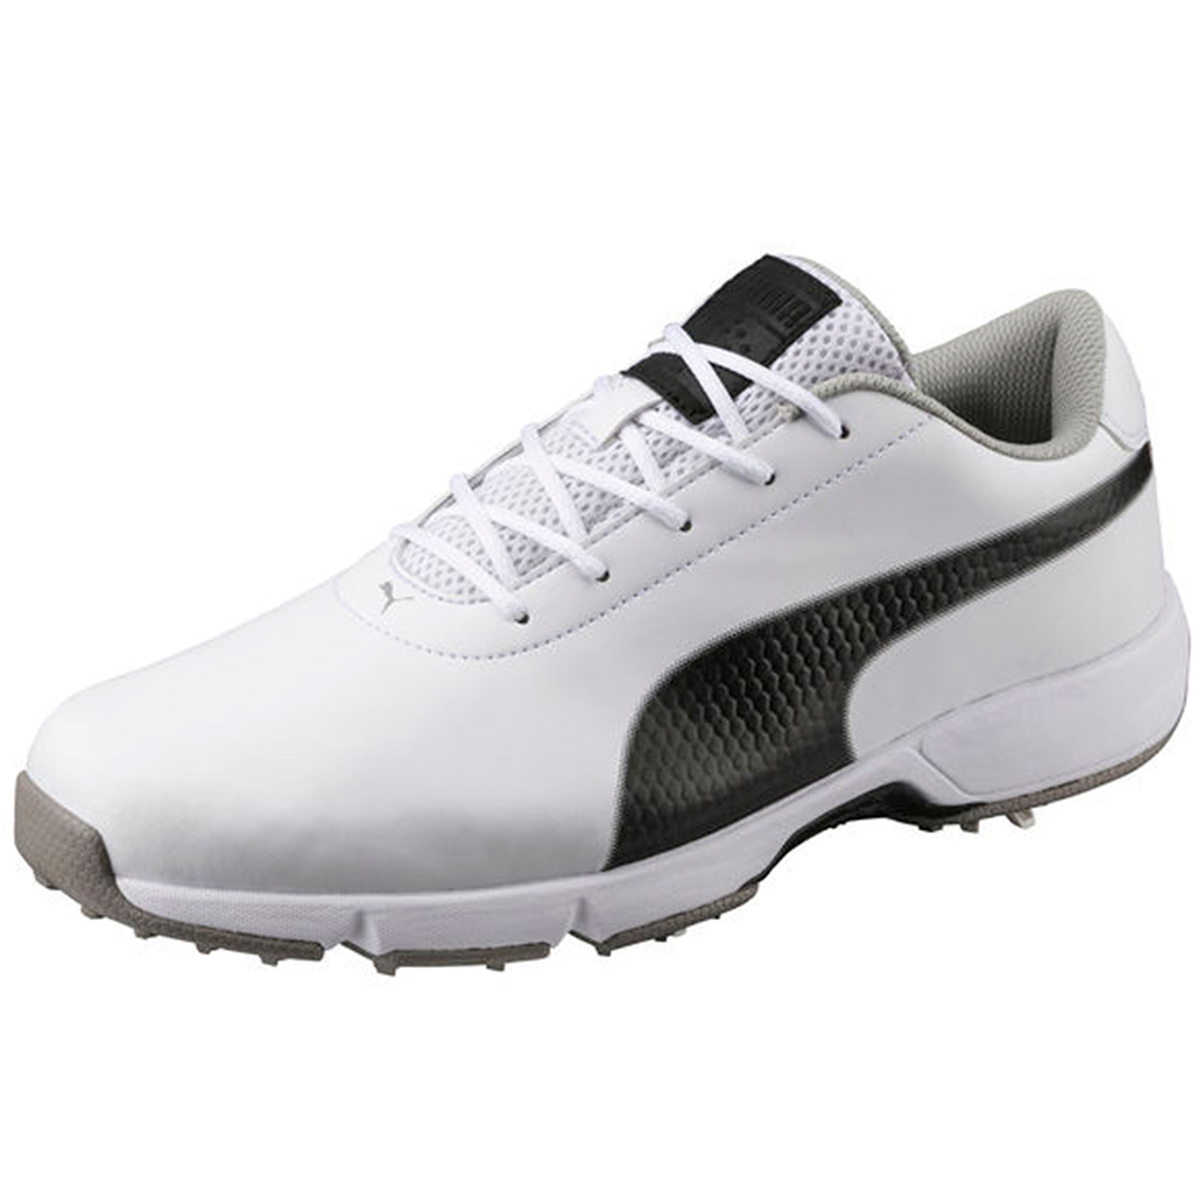 cd4cfc01748 PUMA Golf Drive Cleated Classic Shoes from american golf